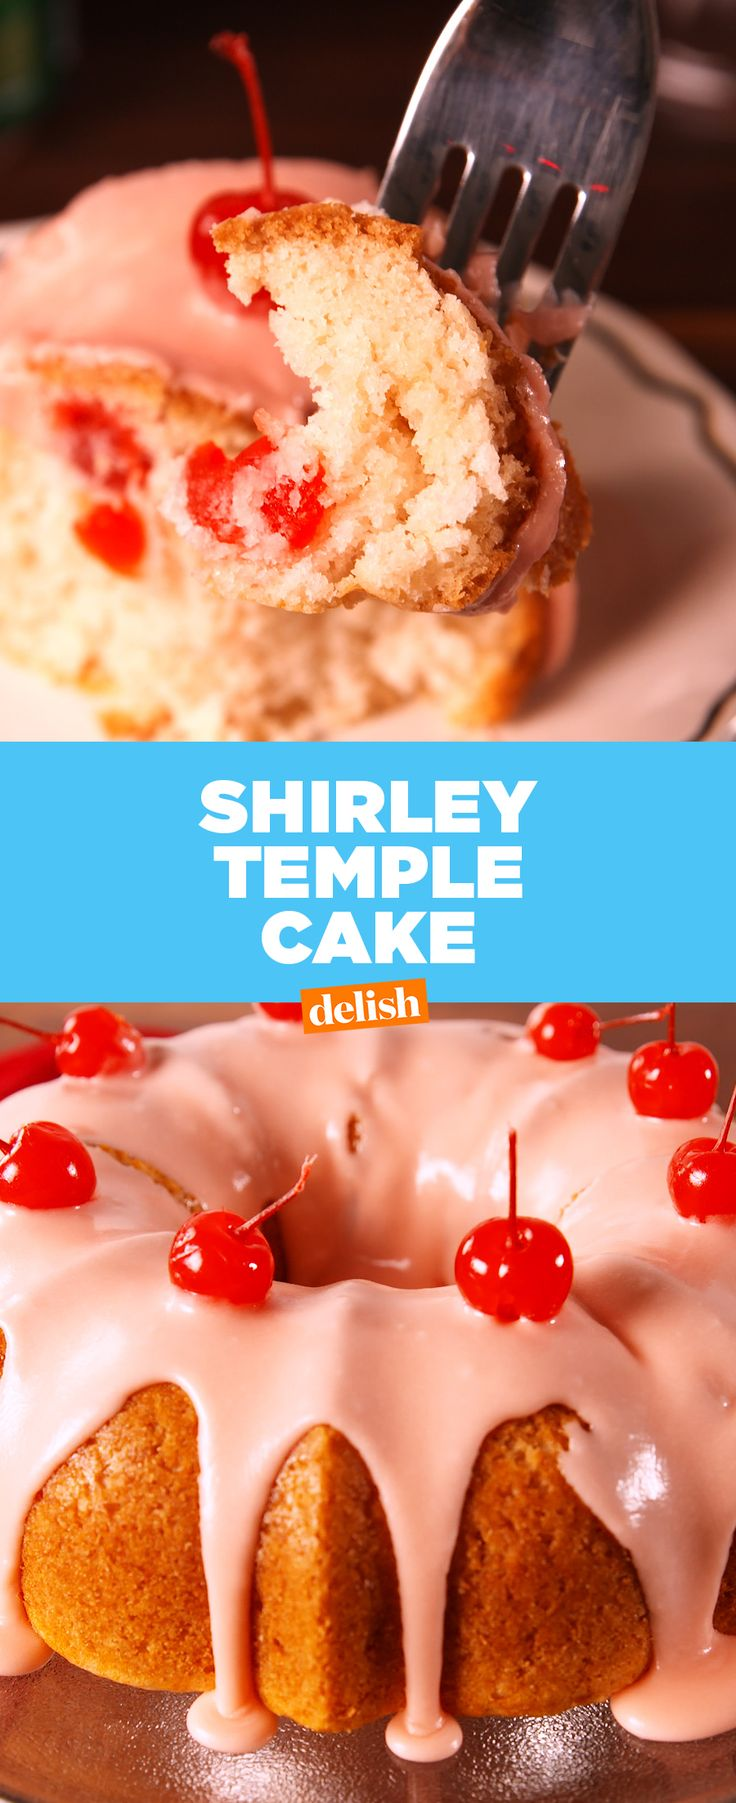 If you love Shirley Temples, you're gonna fall in love with this cake. Get the recipe at Delish.com.